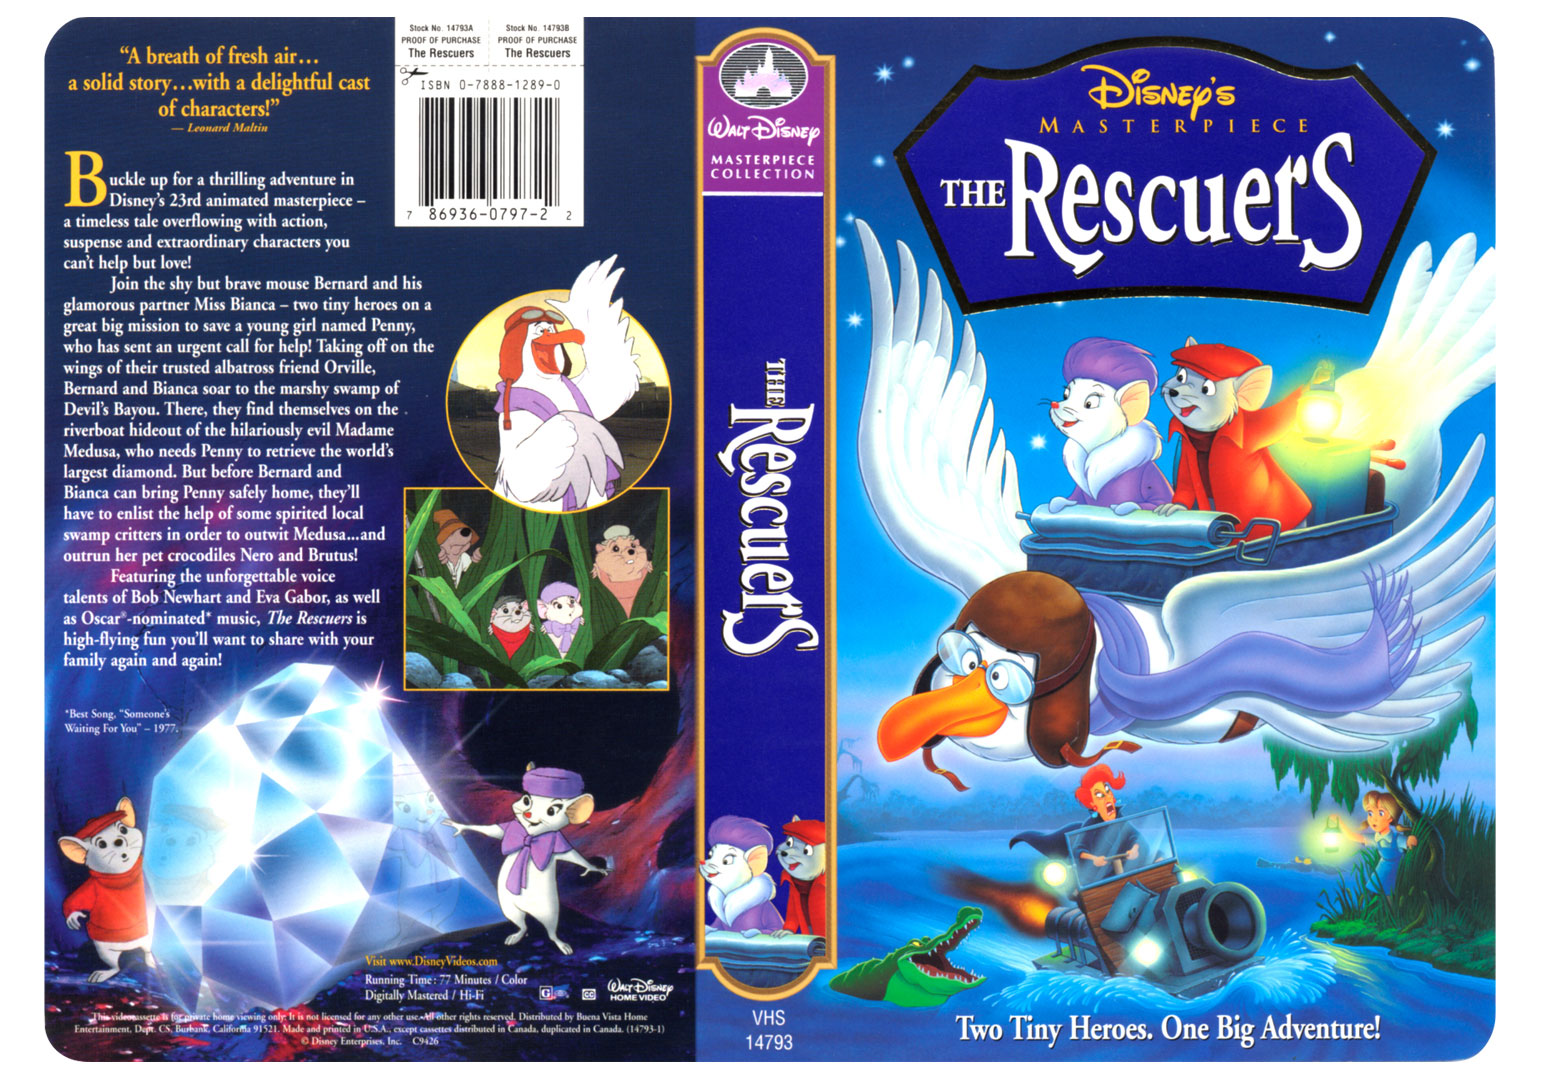 Disney�s Masterpiece The Rescuers - Walt Disney Home Video hired me to design the cover and Illustrate it. Another real classic!